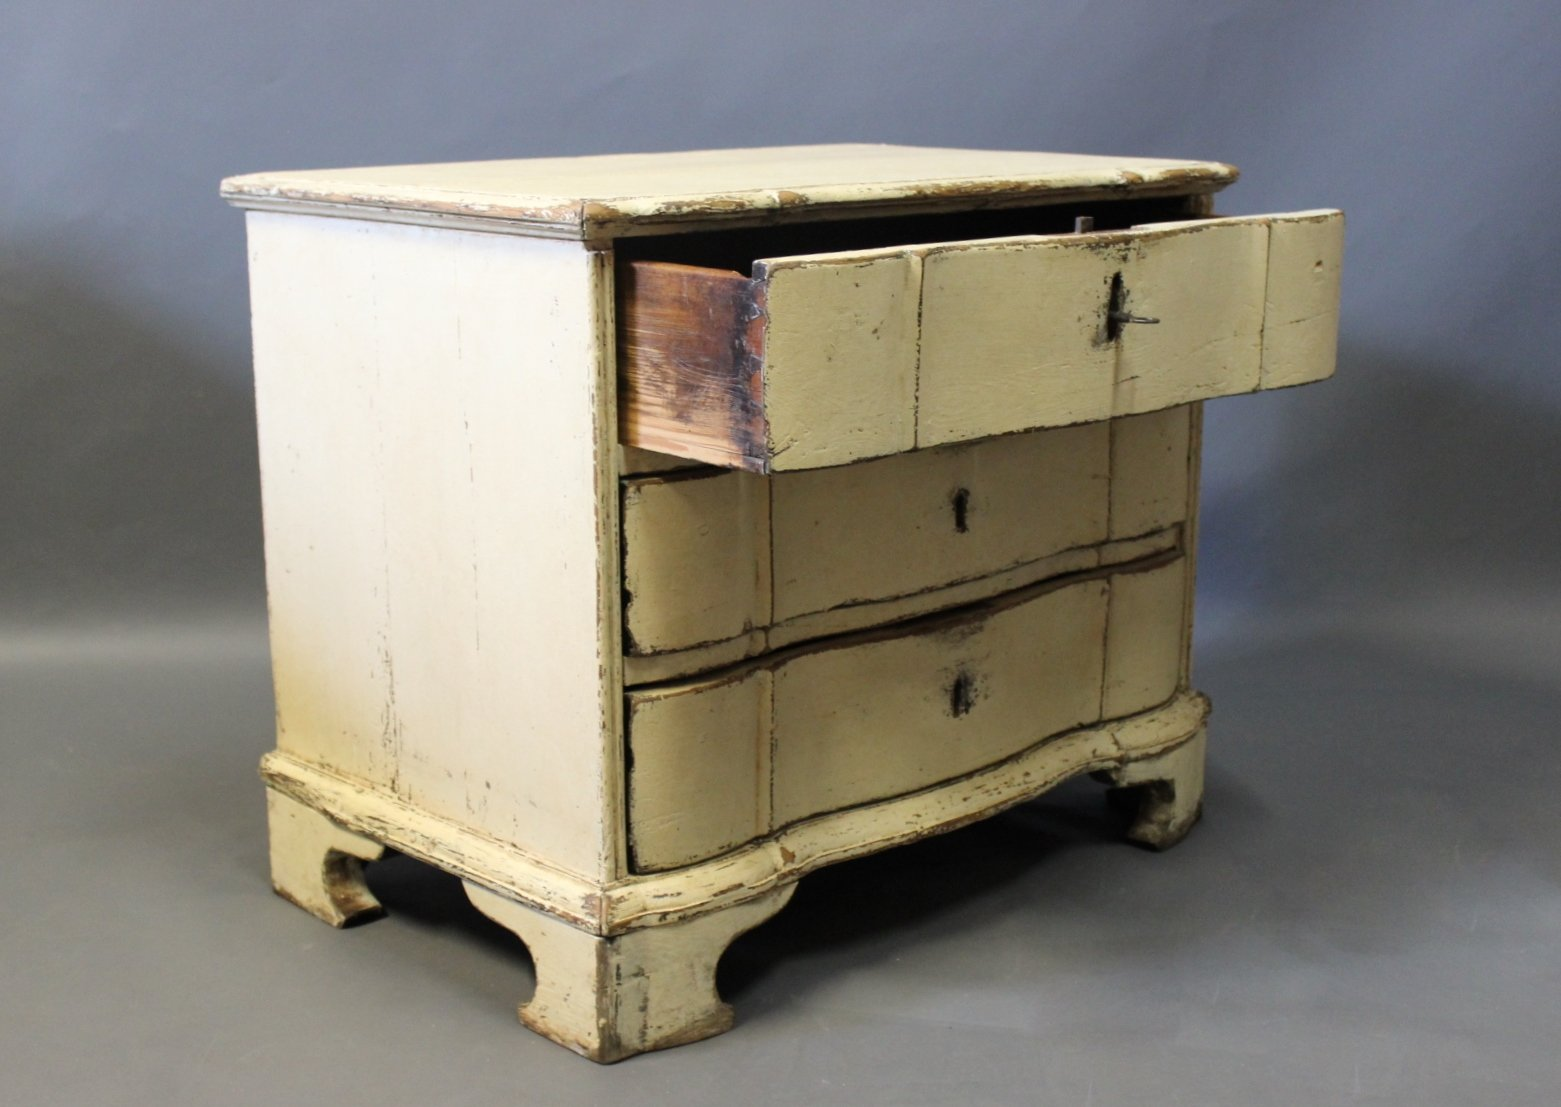 Wooden Chest Of Drawers: Small Danish Baroque Painted Wooden Chest Of Drawers